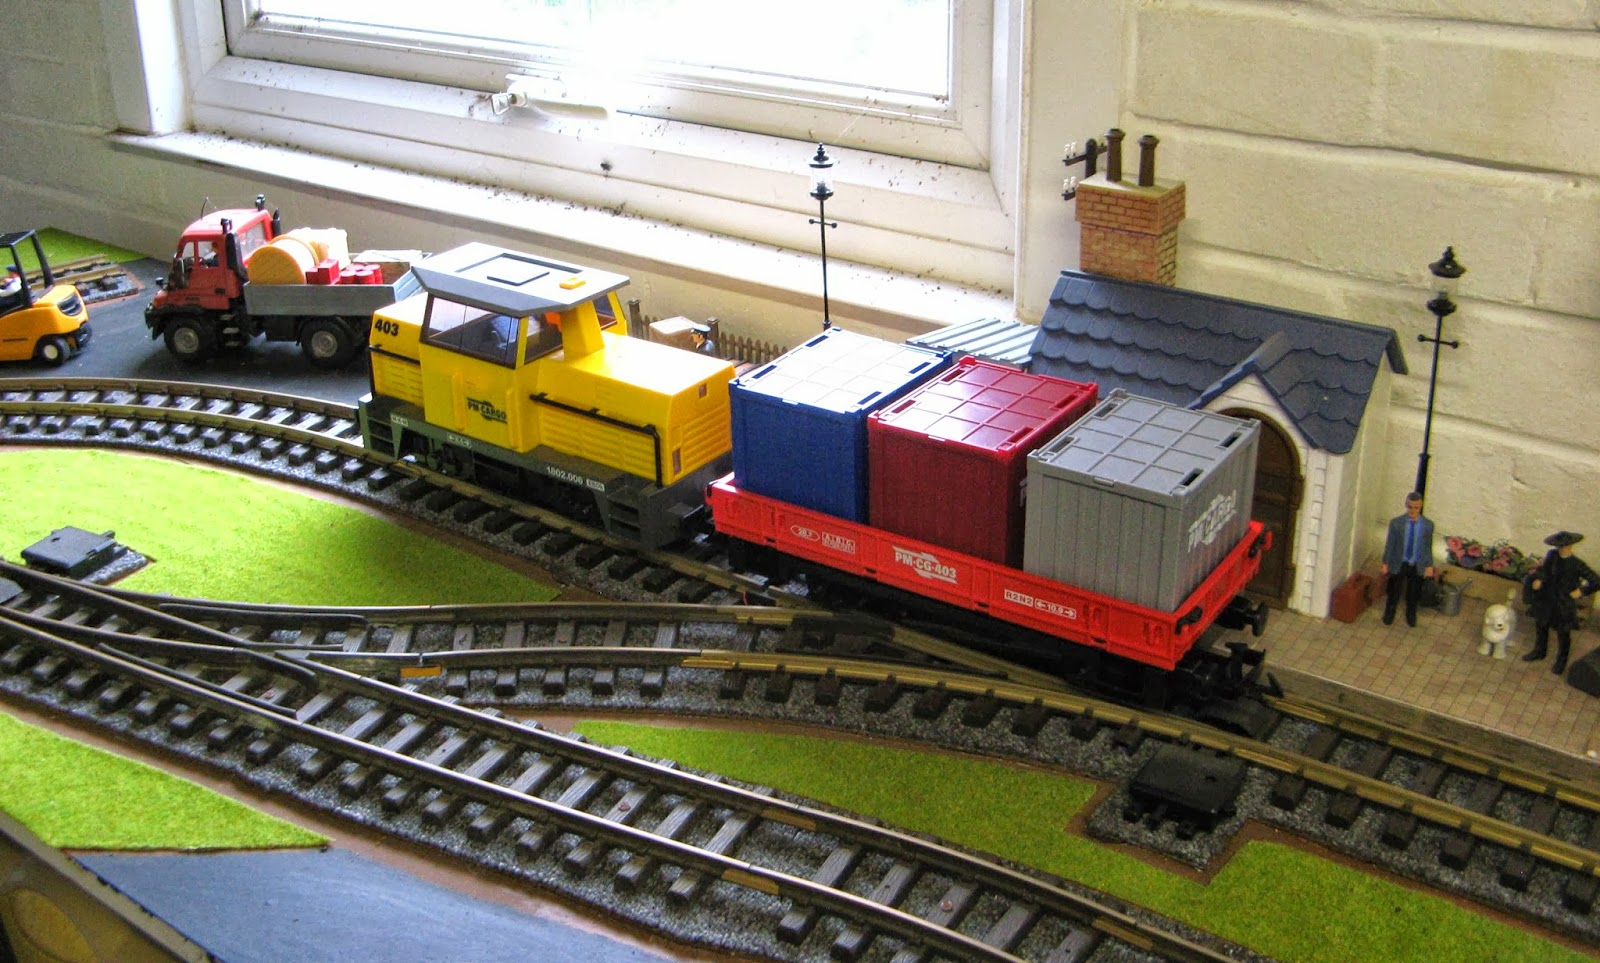 Canford valley railway playmobil rc train on the layout - Train playmobil ...